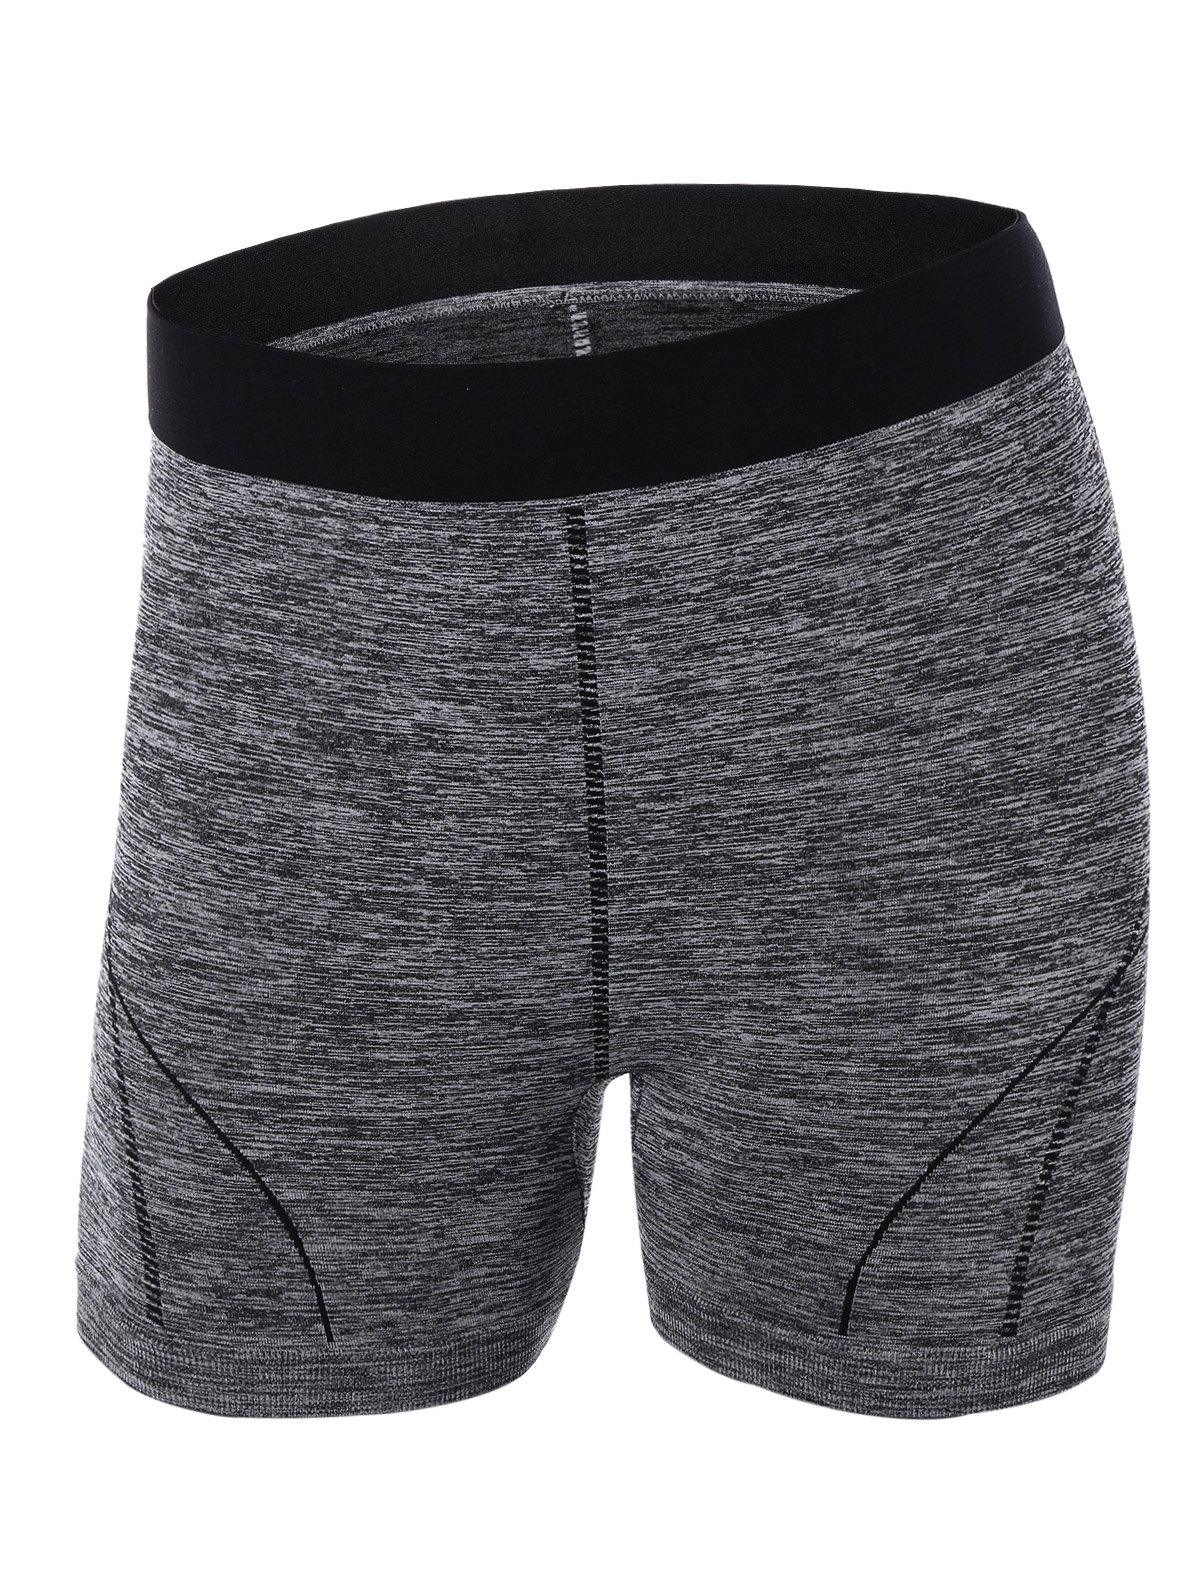 Skinny Color Block Yoga Shorts